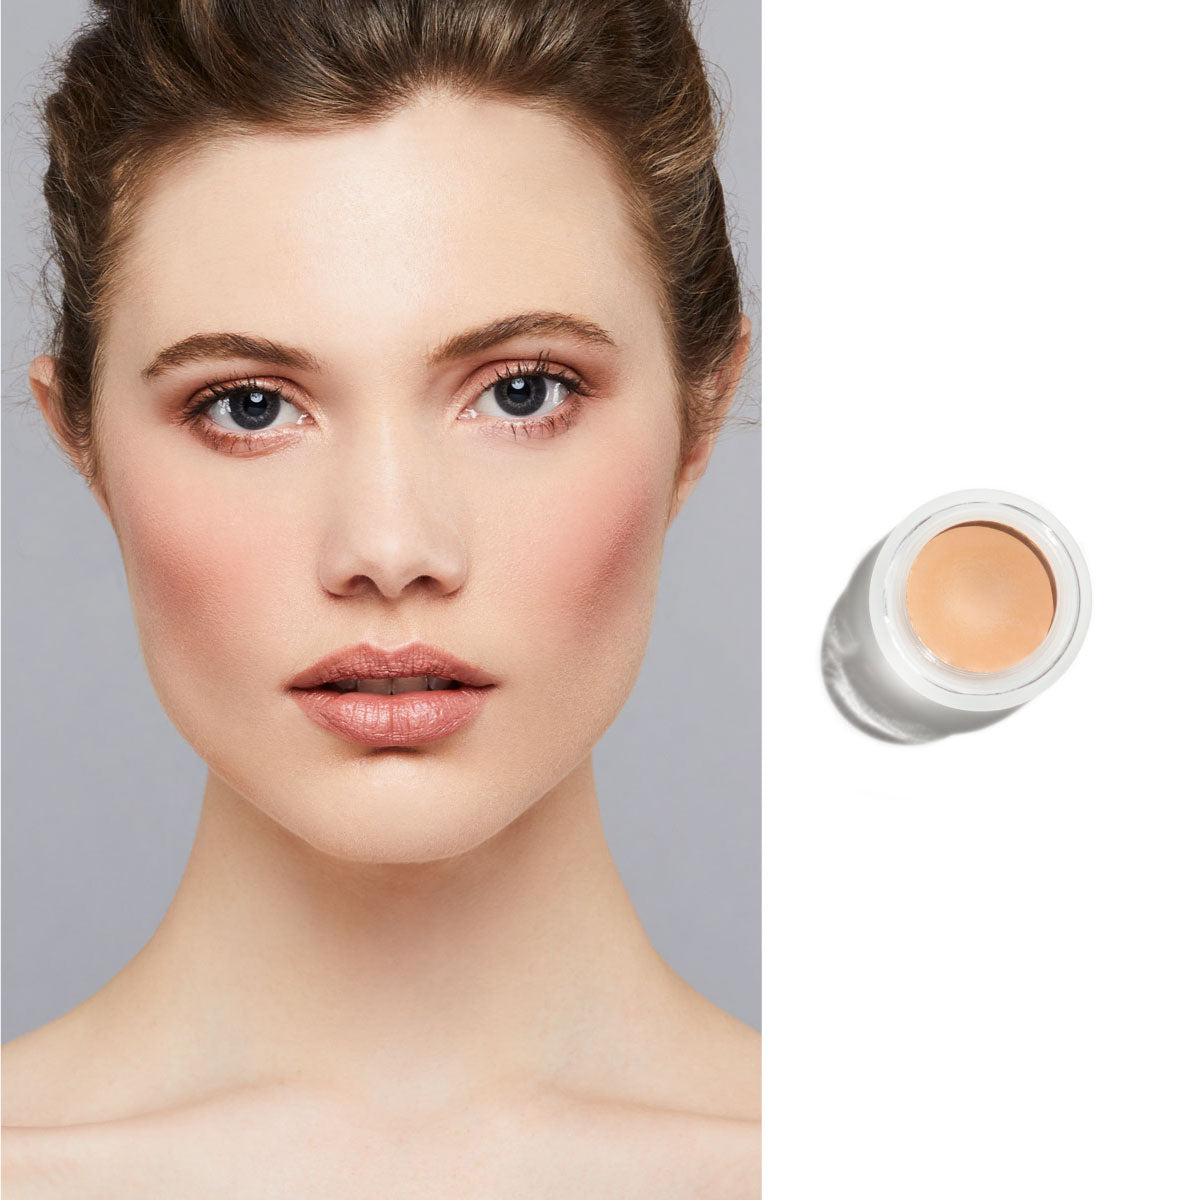 Concealer/Foundation 1.0